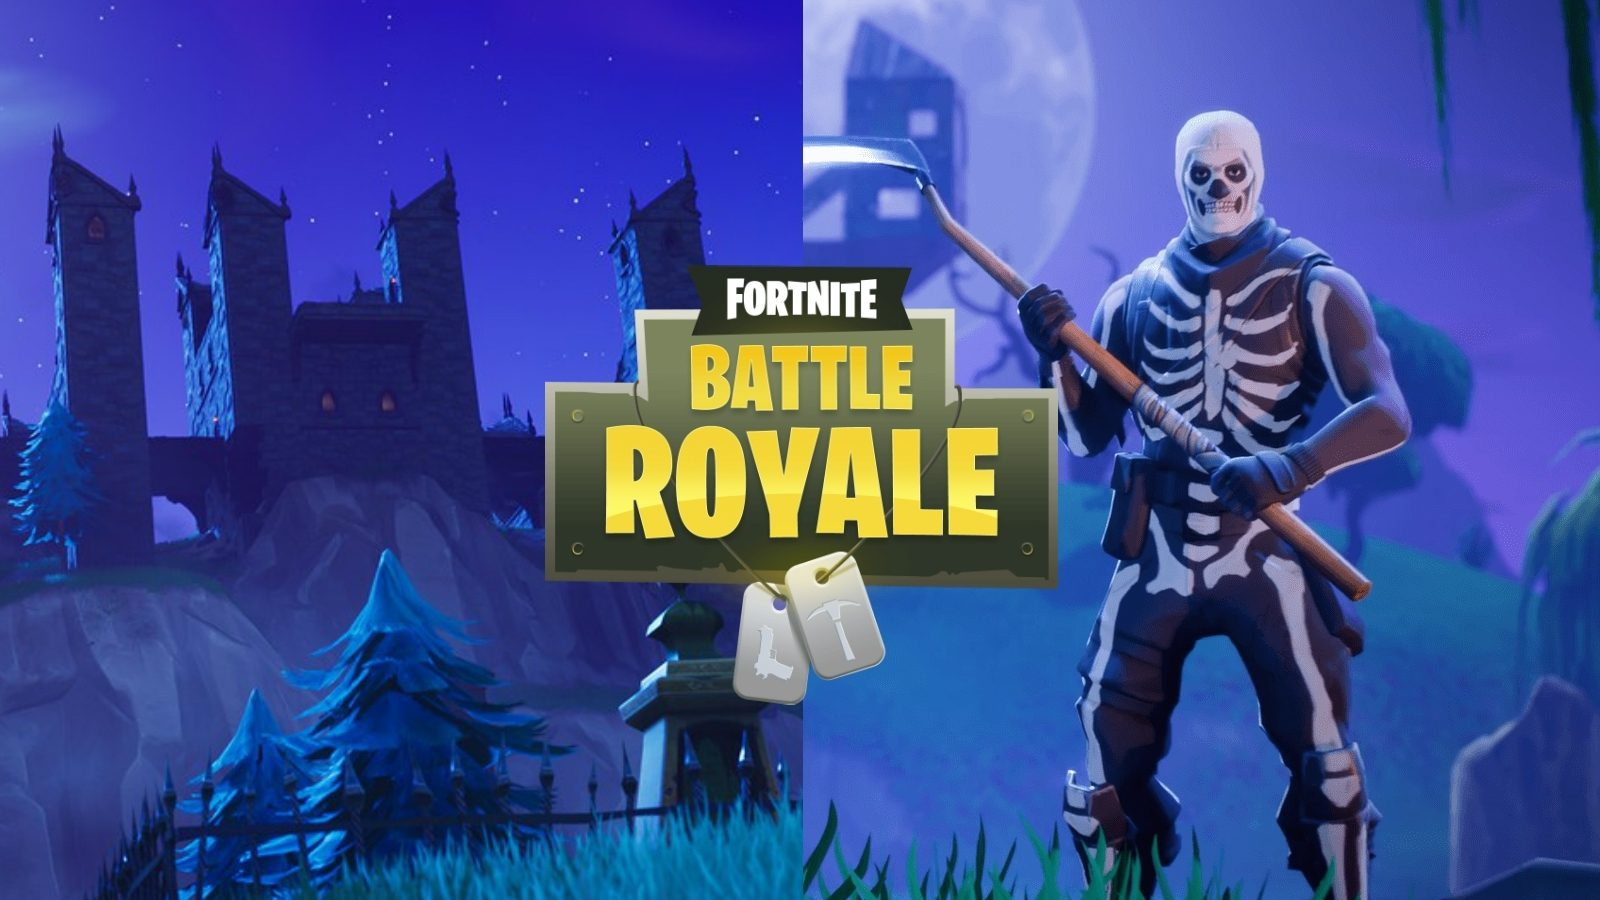 Free Download Fortnite Halloween Cosmetics Leaked Including The Return Of 1600x900 For Your Desktop Mobile Tablet Explore 28 Fortnite Halloween Wallpapers Fortnite Halloween Wallpapers Fortnite Halloween 4k Wallpapers Halloween Wallpapers